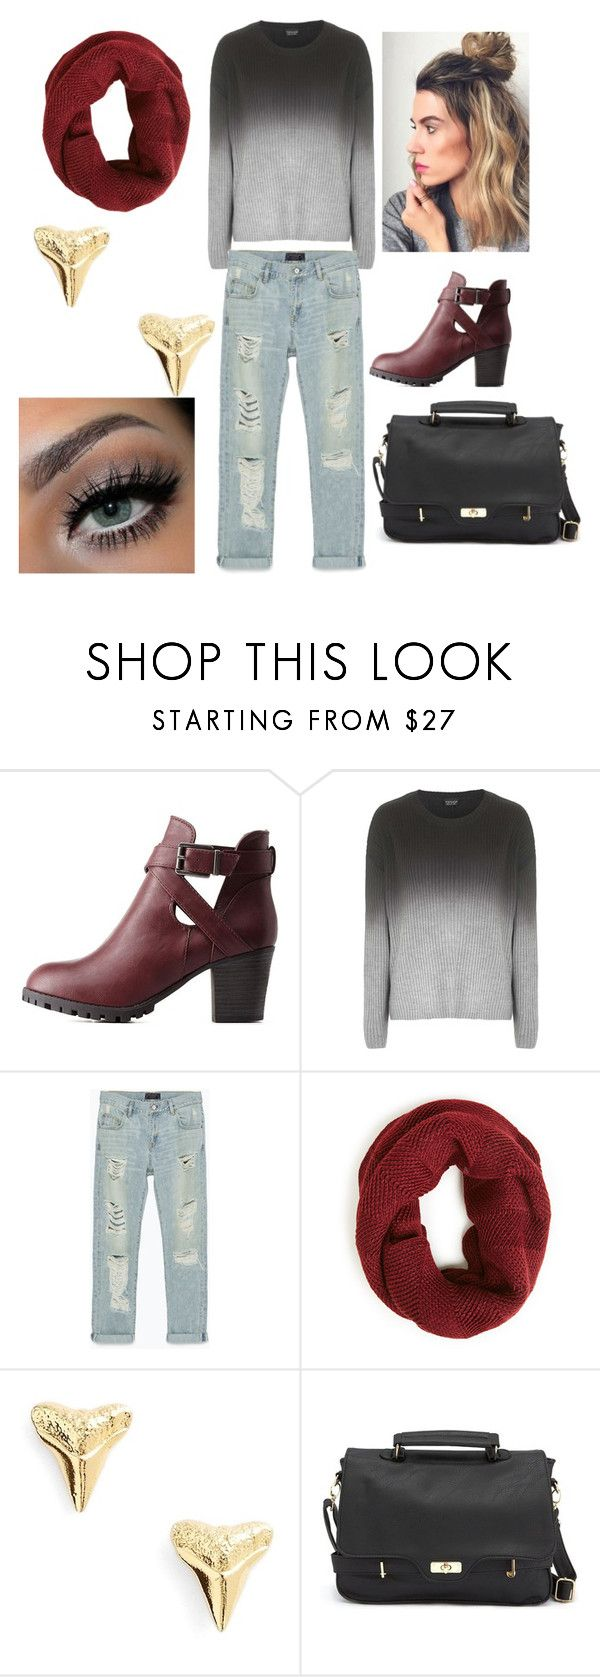 """Ready for Fall"" by snowlady17 ❤ liked on Polyvore featuring Charlotte Russe, Topshop, Zara and ki-ele"